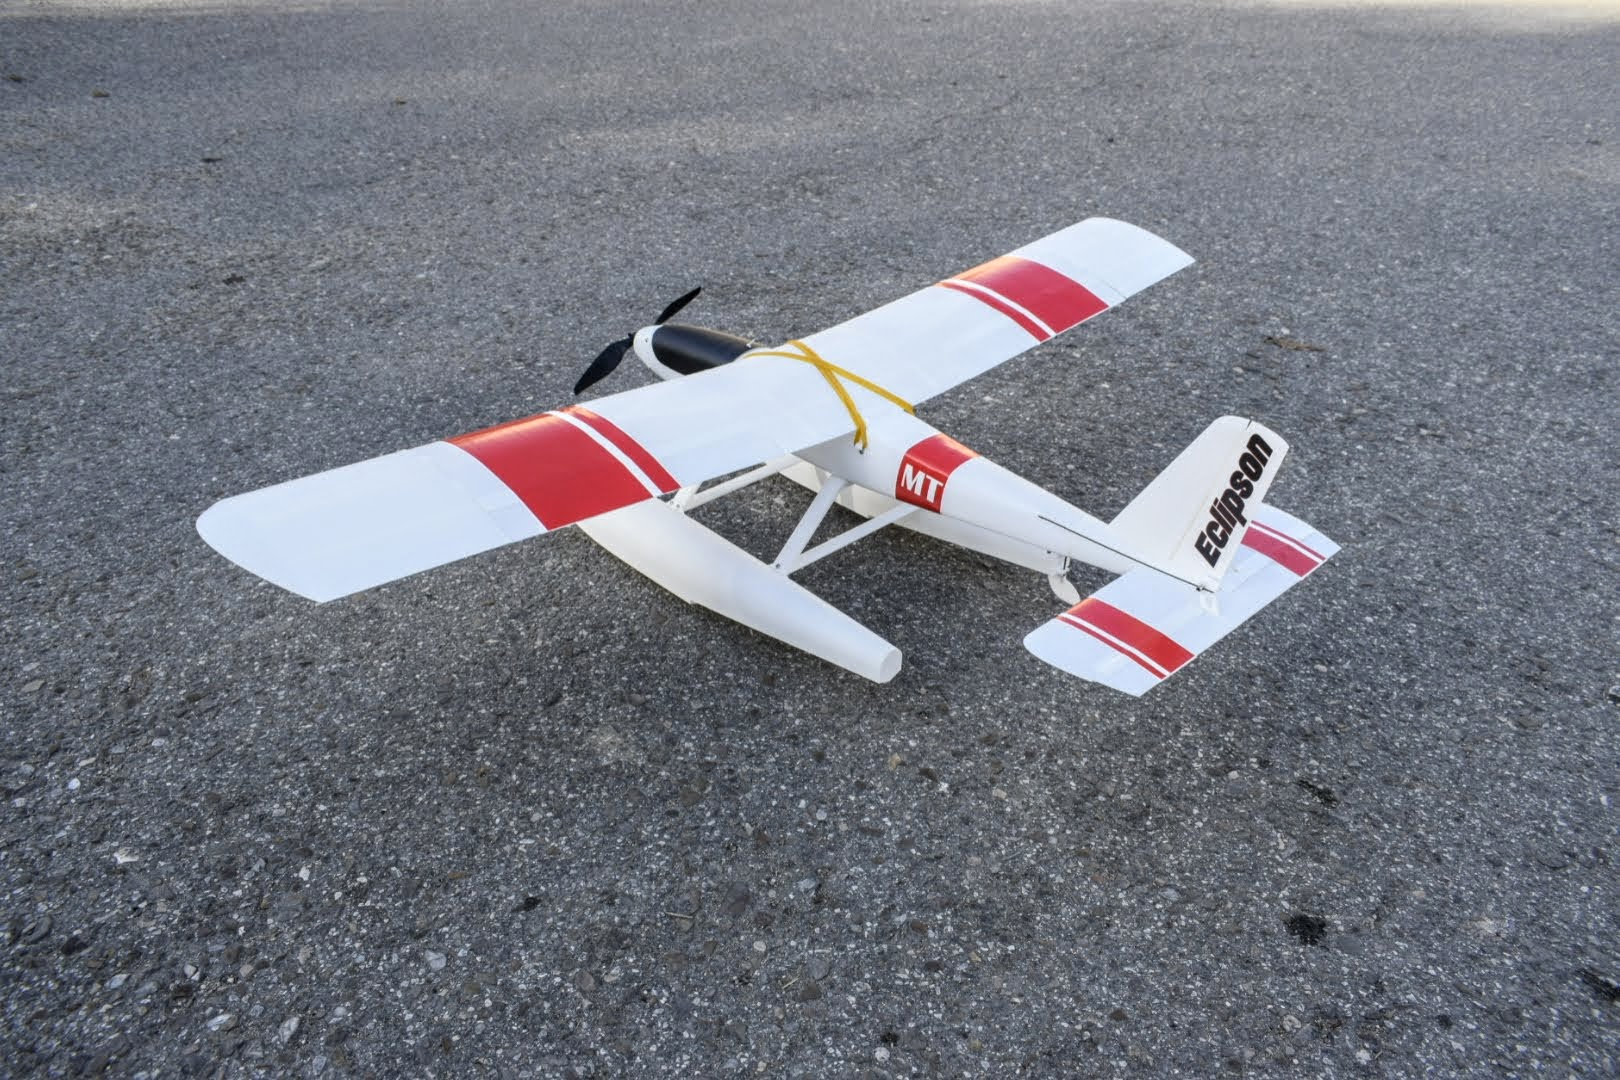 Eclipson Model T - 3D printed seaplane